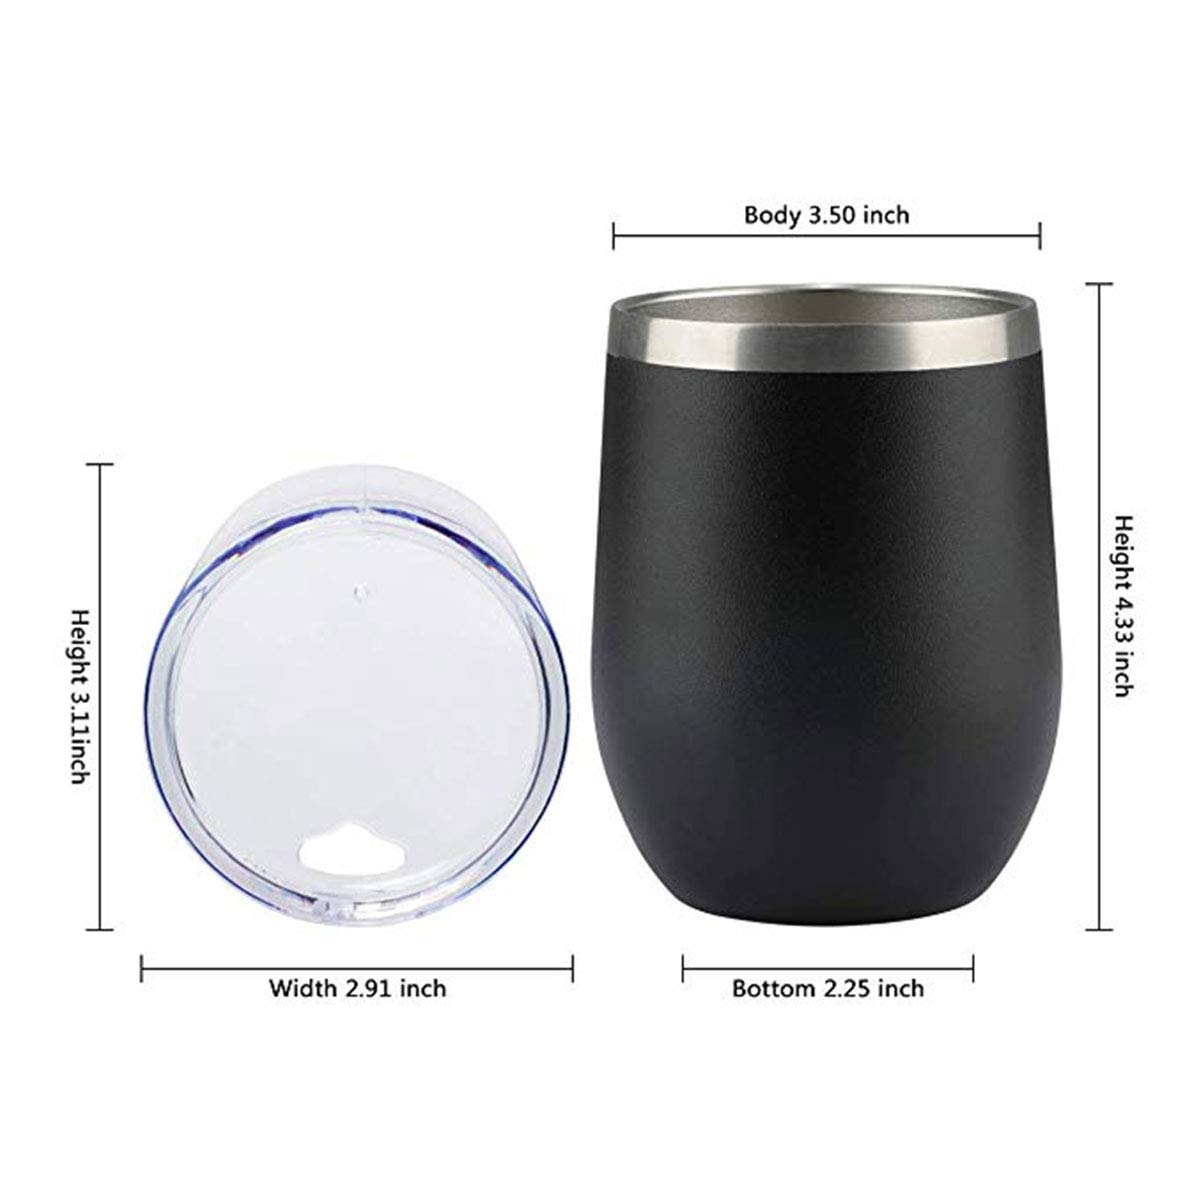 6 Pack Double-insulated Stemless Wine Tumbler with Lids and Straws 12 Oz Stainless Steel Unbreakable Wine Glass Cup Mug for Wine,Coffee,Drinks,Champagne and Cocktails,Black by Sangyn (Image #3)